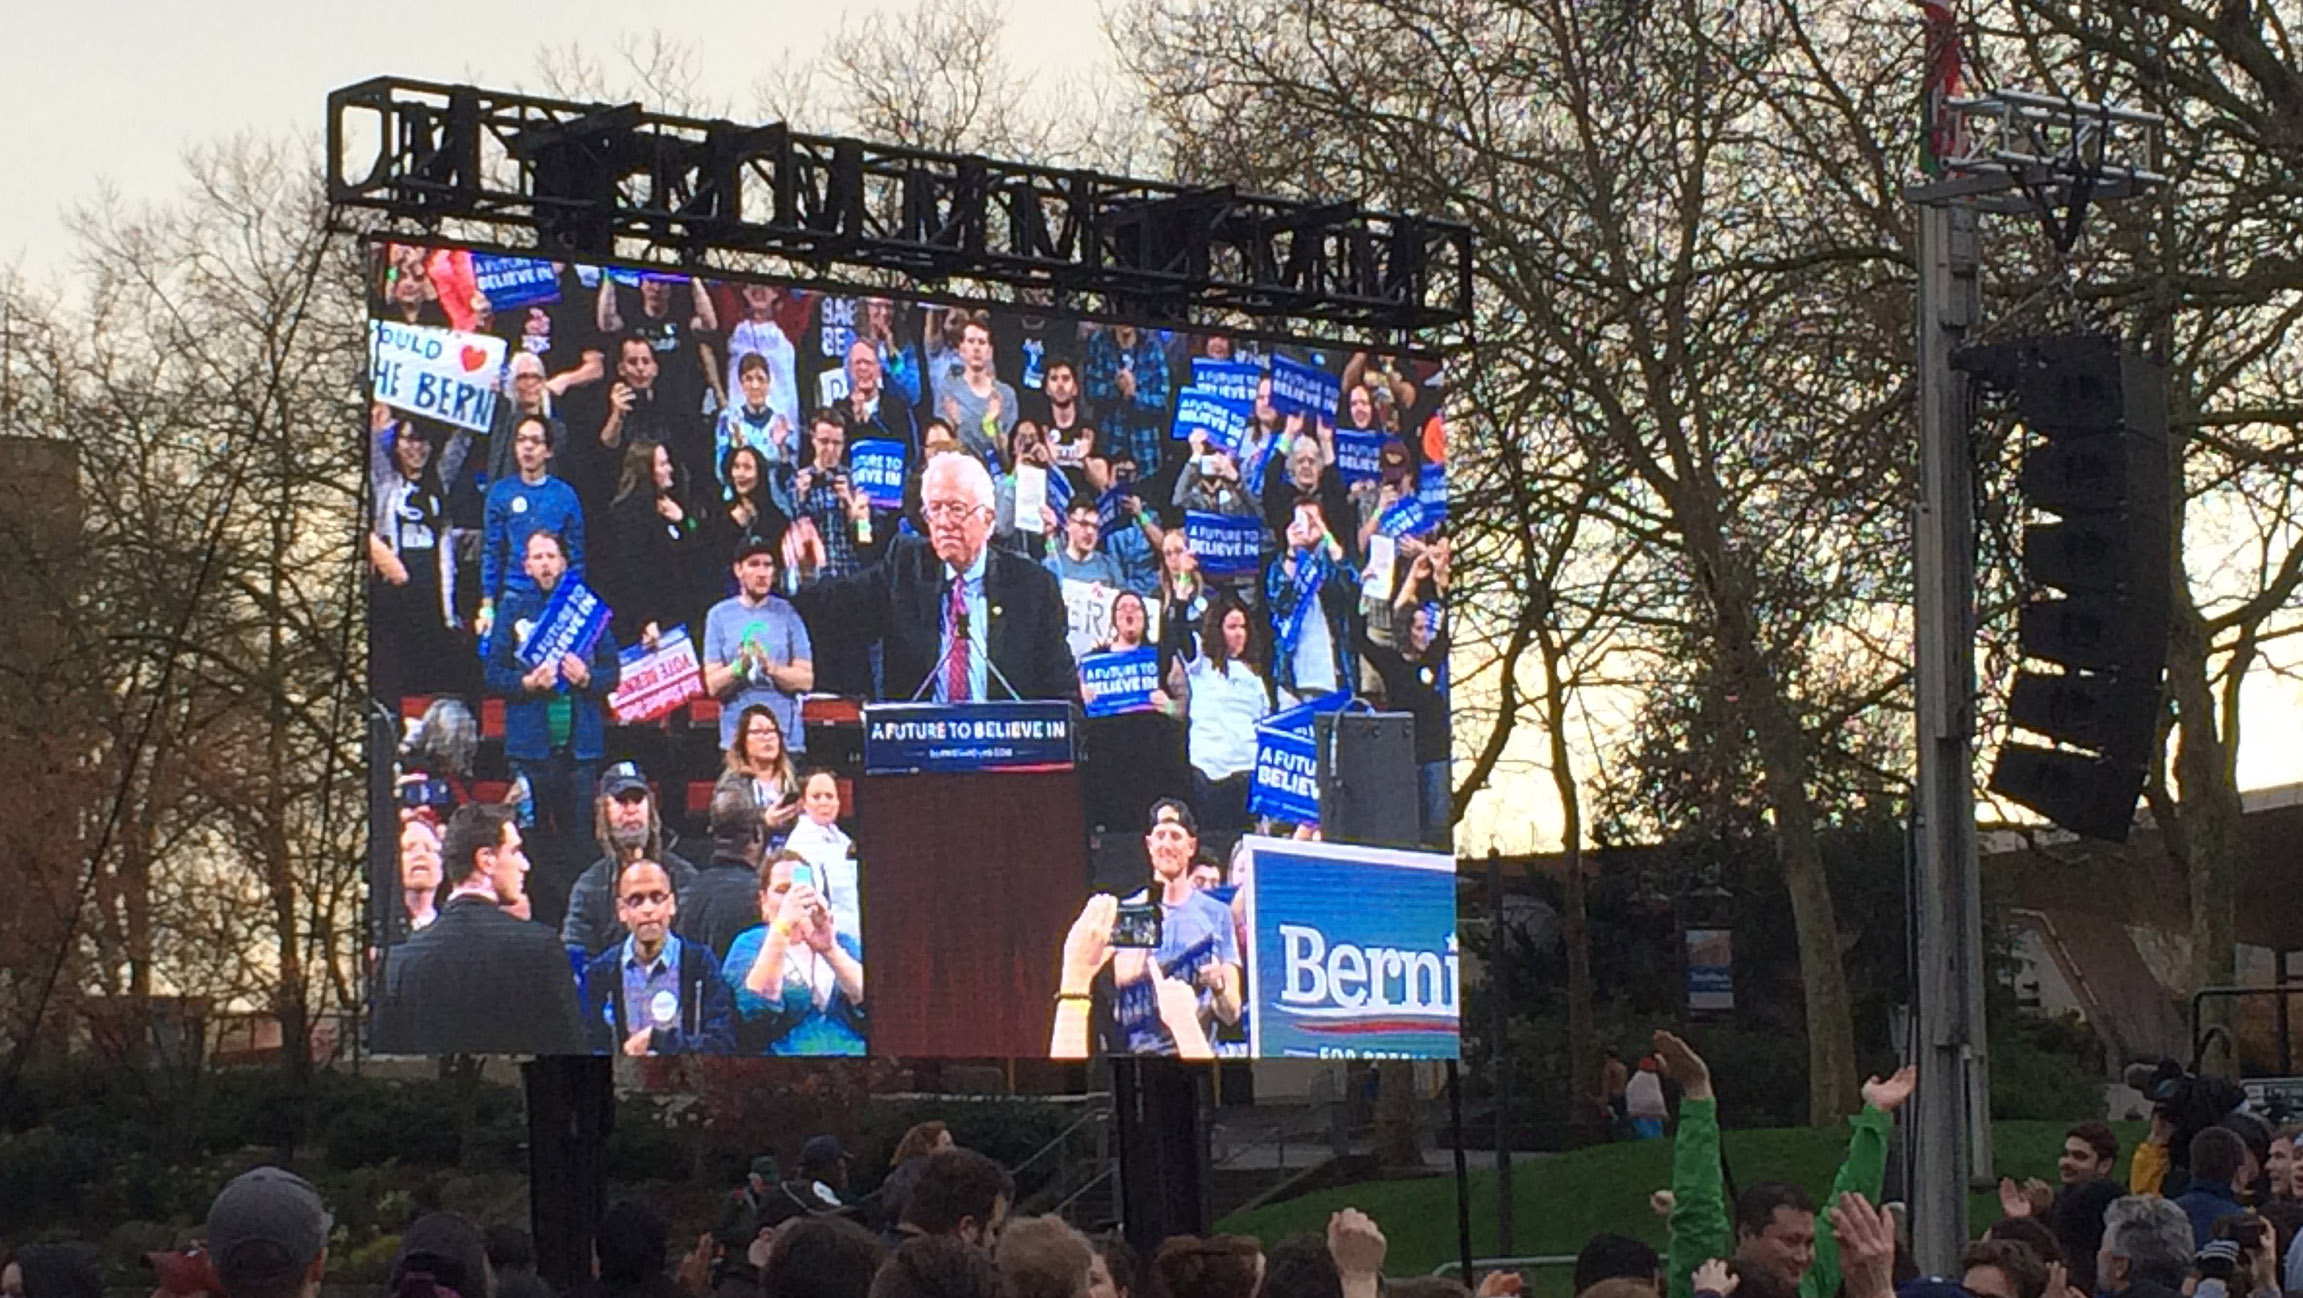 Bernie Sanders LED video wall